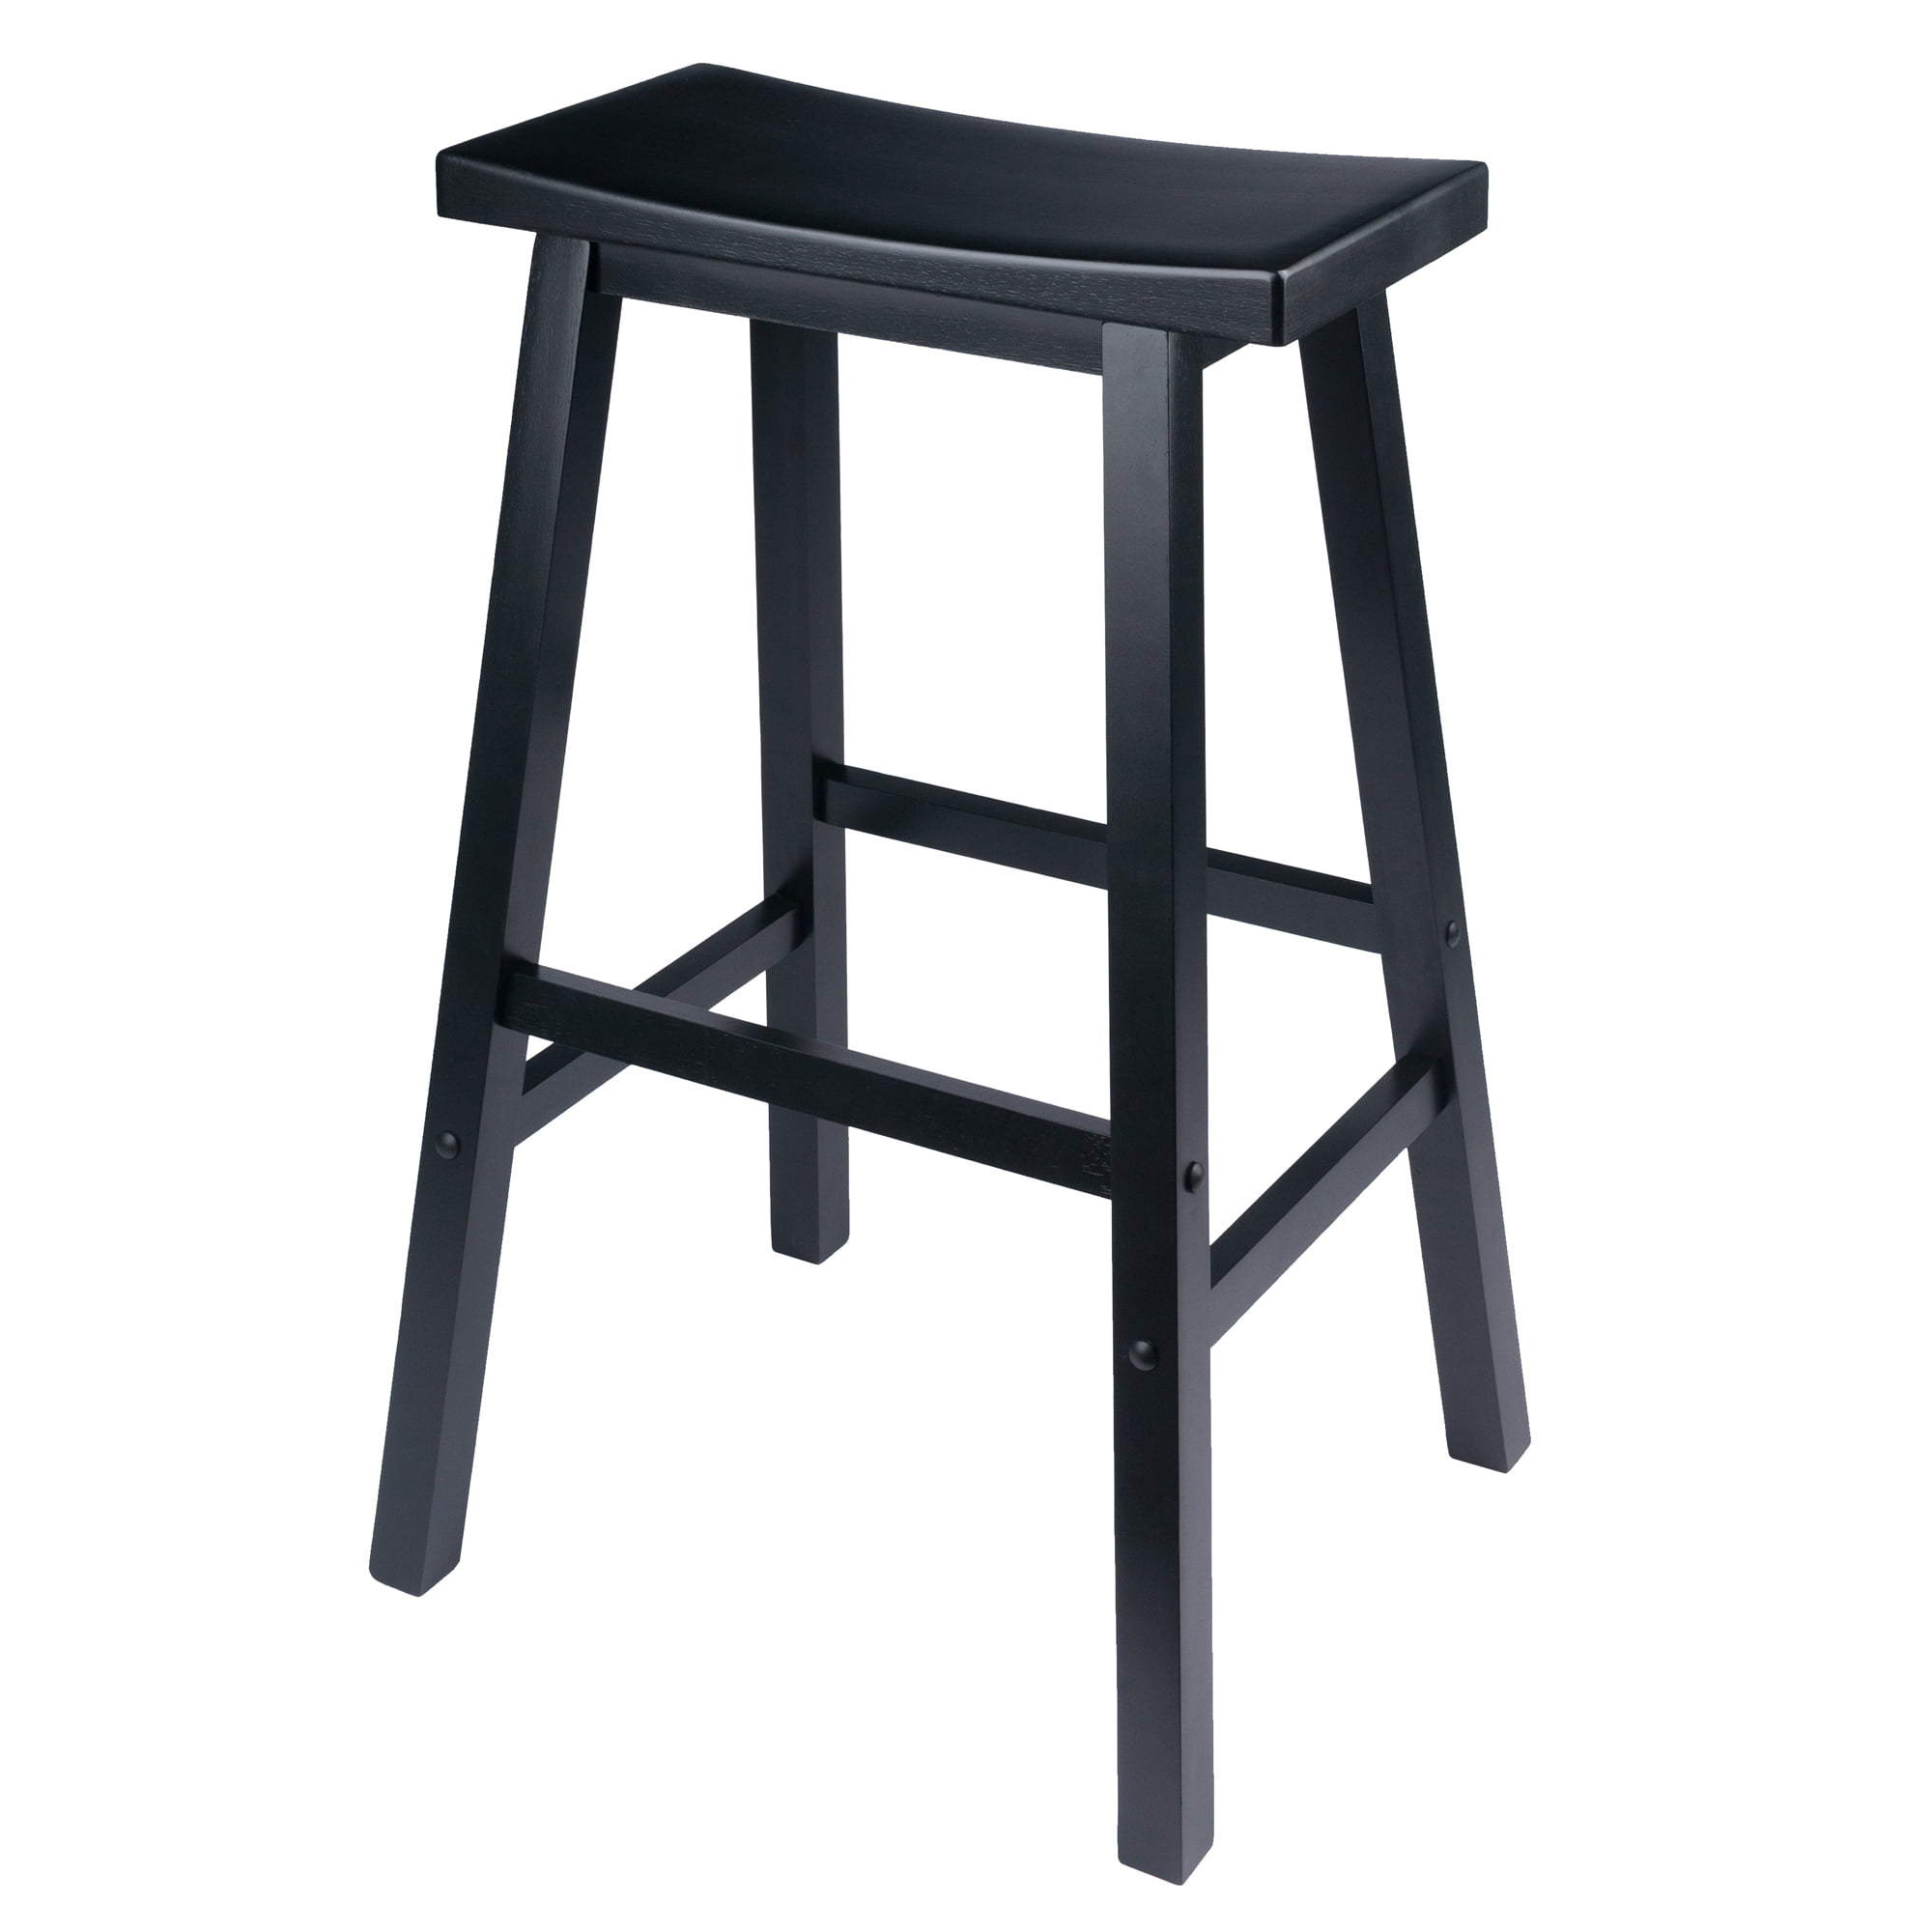 Surprising Winsome Wood Satori Saddle Seat Bar Stool 29 Black Uwap Interior Chair Design Uwaporg